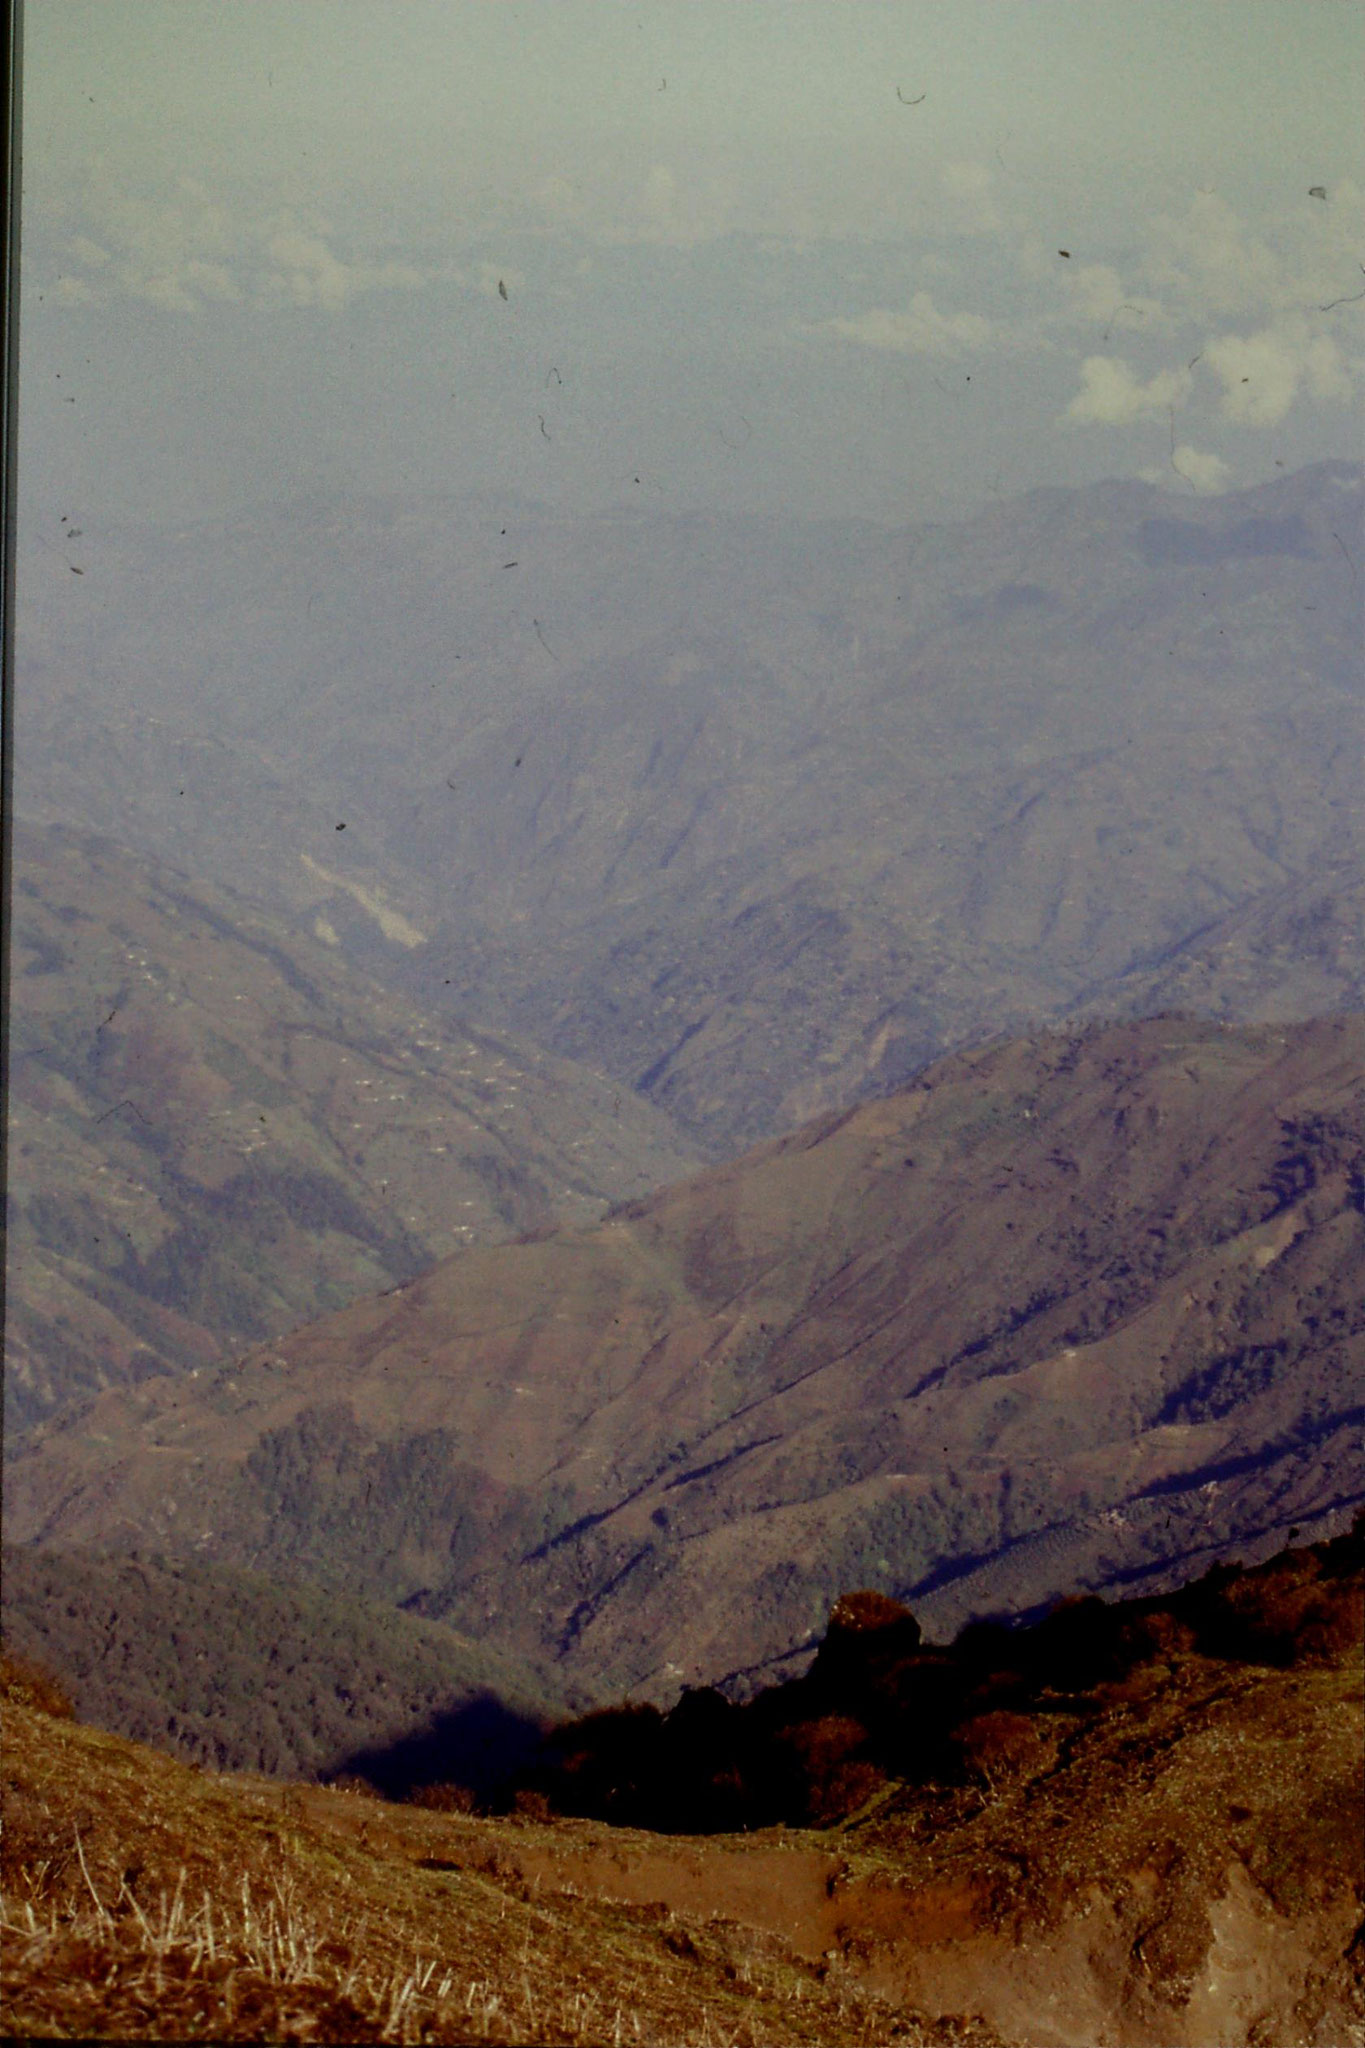 8/5/1990: 29: looking WNW into Nepalese valley